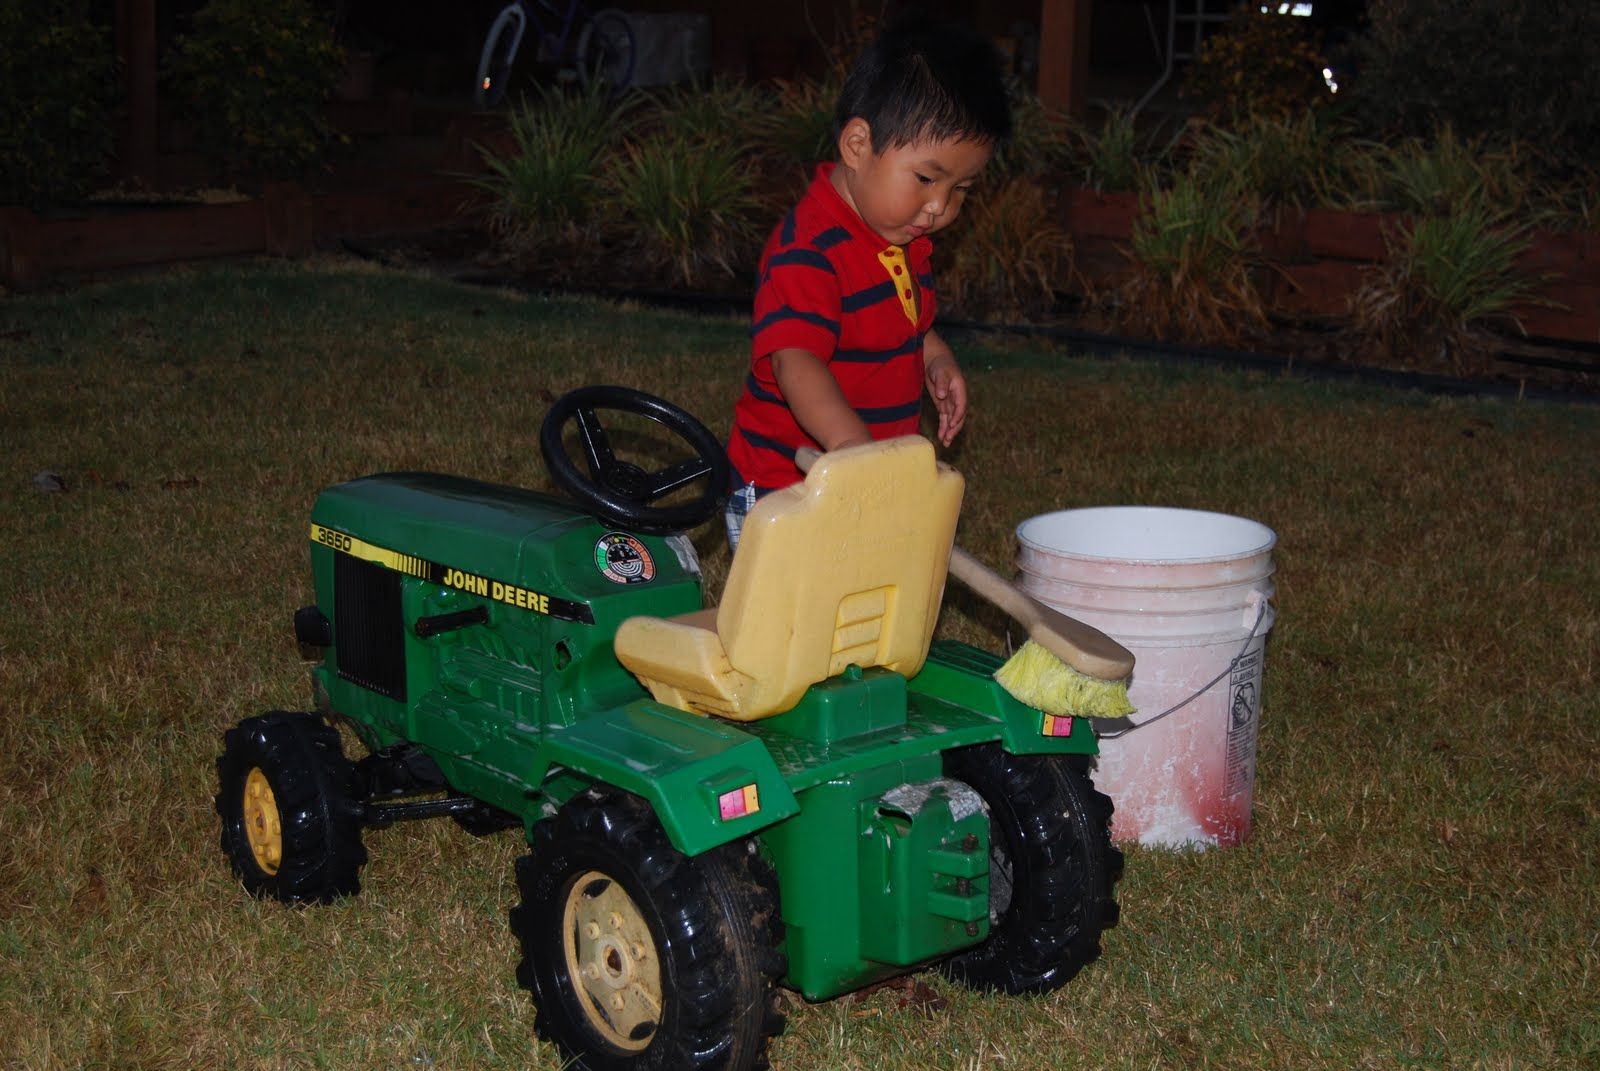 Boy On Tractor : Country girl at home a boy and his tractor